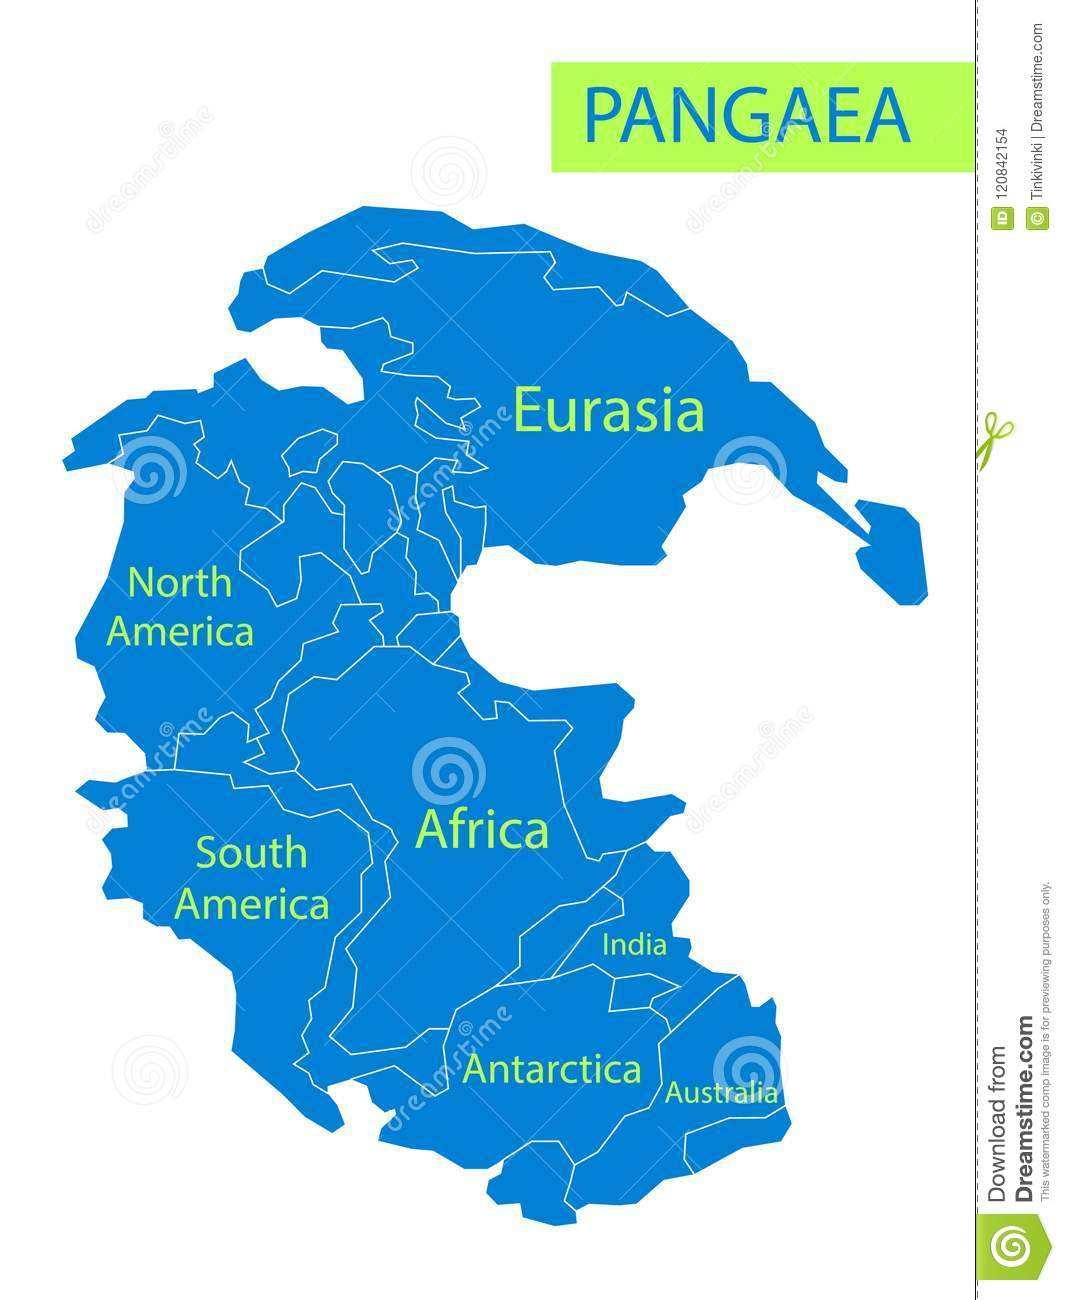 Pangea Supercontinent Map Pangaea Or Pangea. Vector Illustration Of Supercontinent That